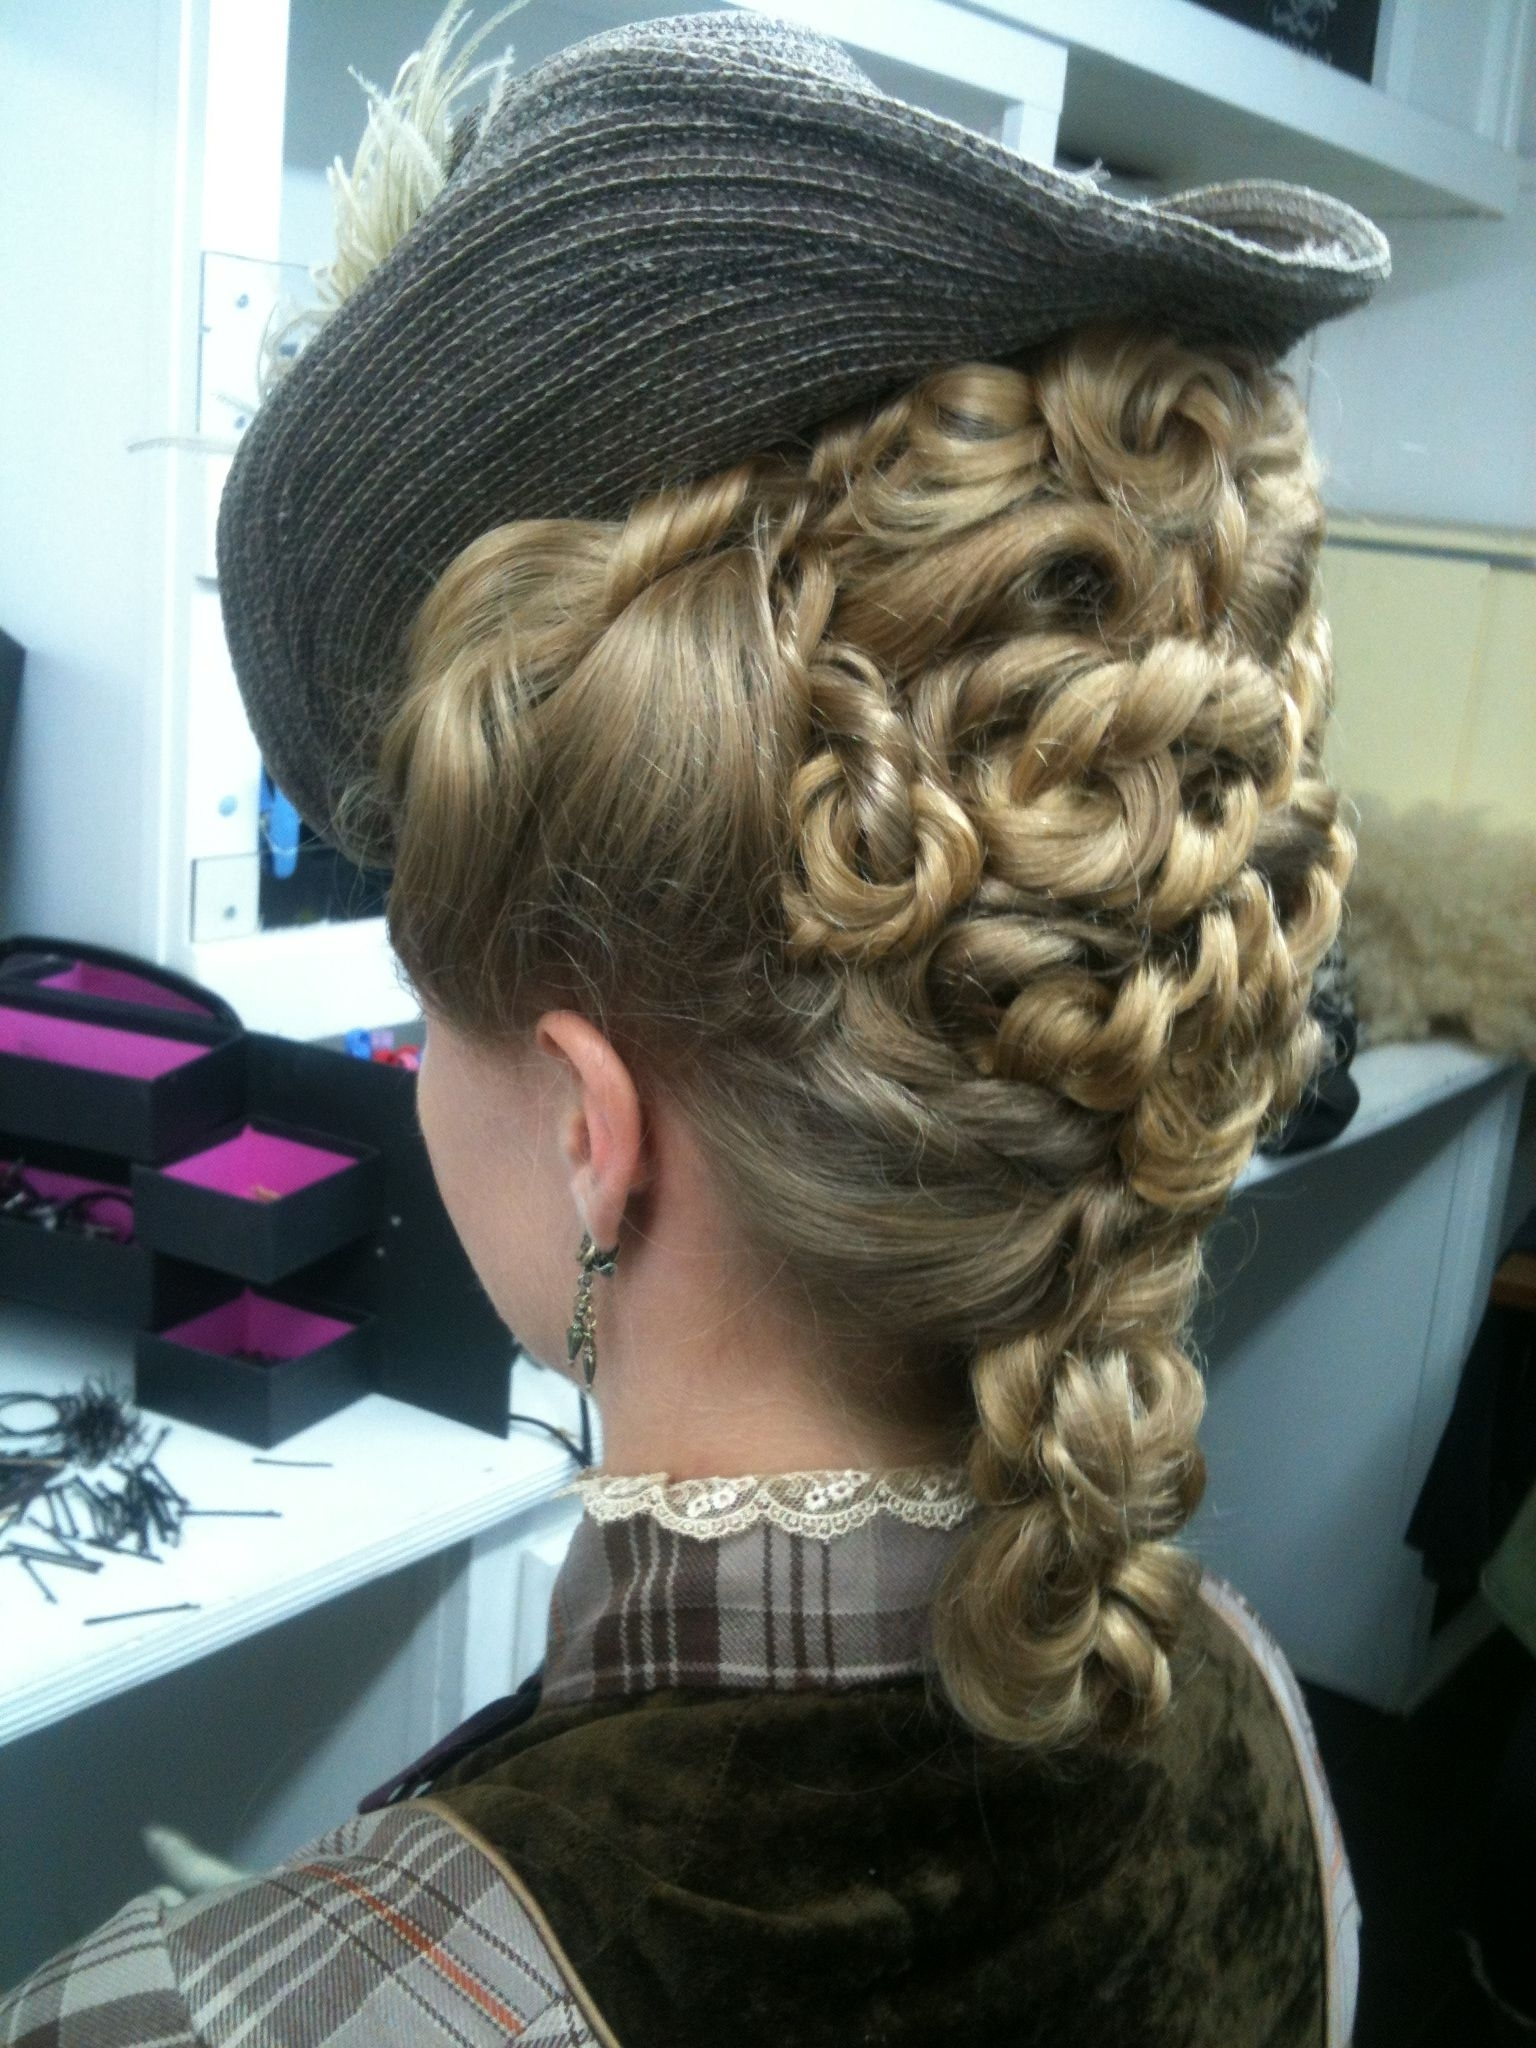 Favorite Braided Victorian Hairstyles With When Sybil Gets To Wear Fetching Little Hats Instead Of Dreary (View 11 of 15)